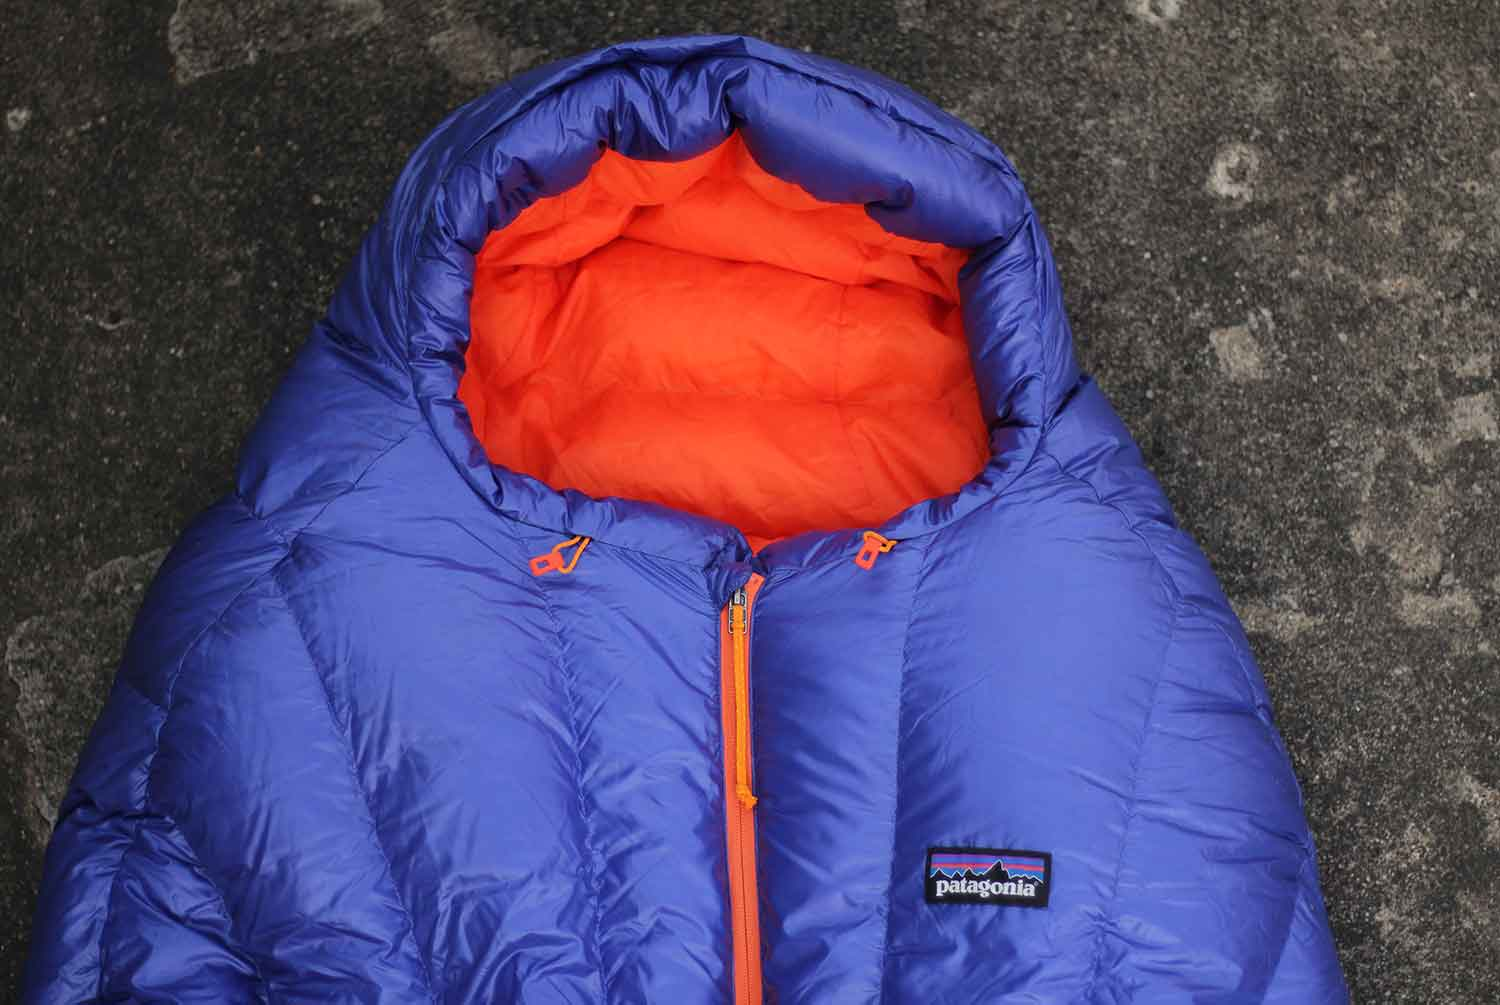 Tested Patagonias First Sleeping Bags